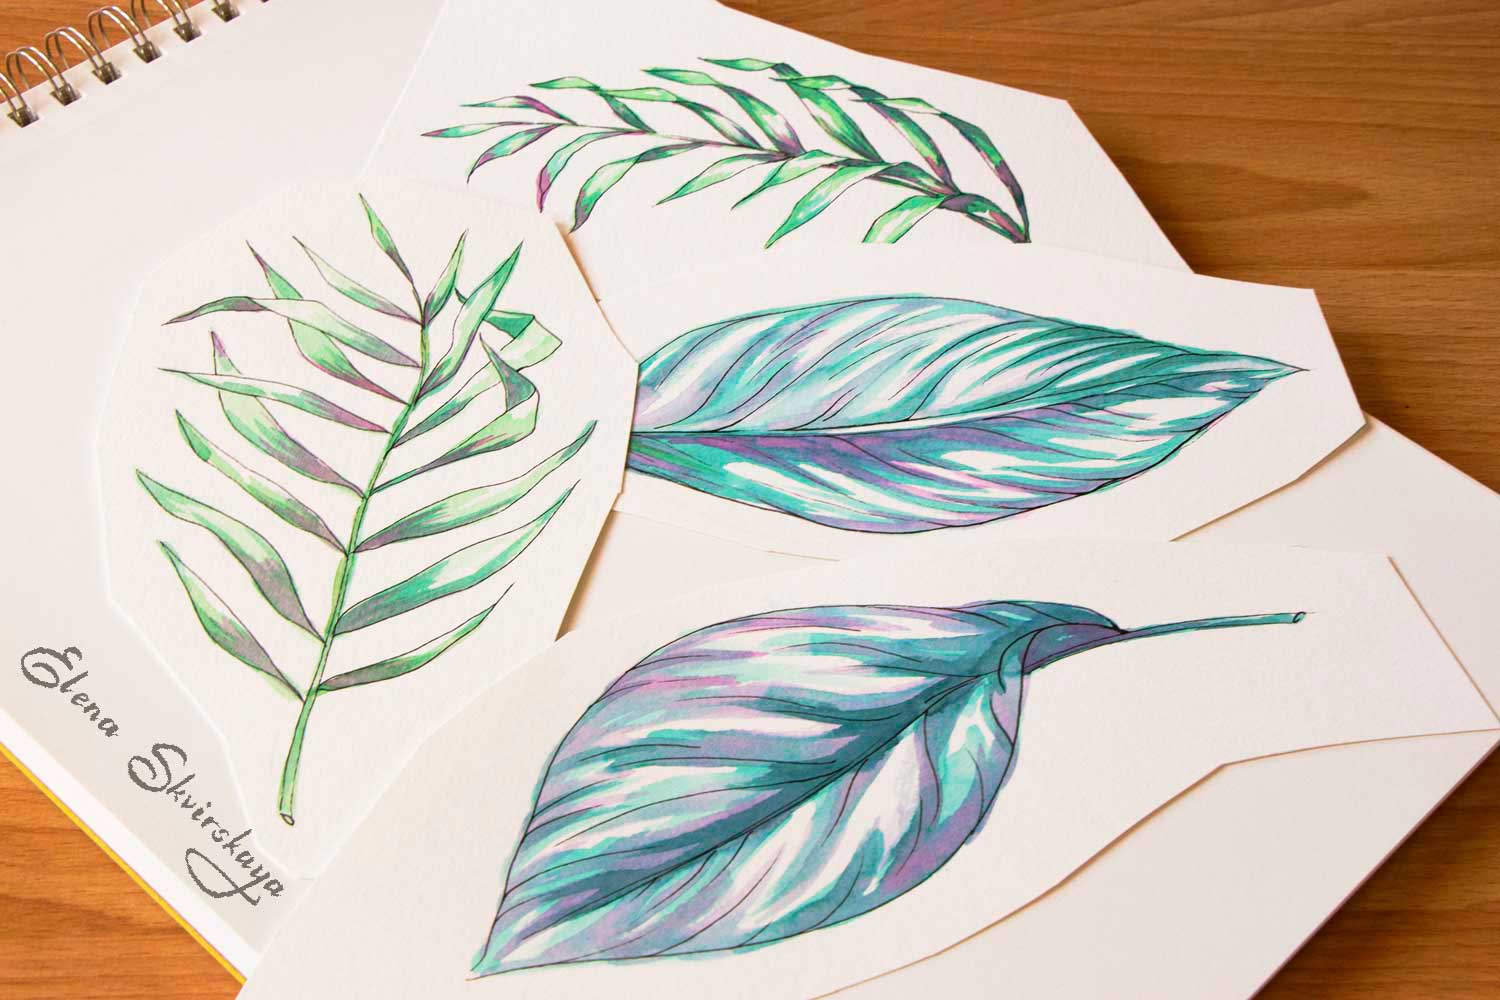 palm leaves, tropical leaves, watercolor on paper, sketches for a surface print design